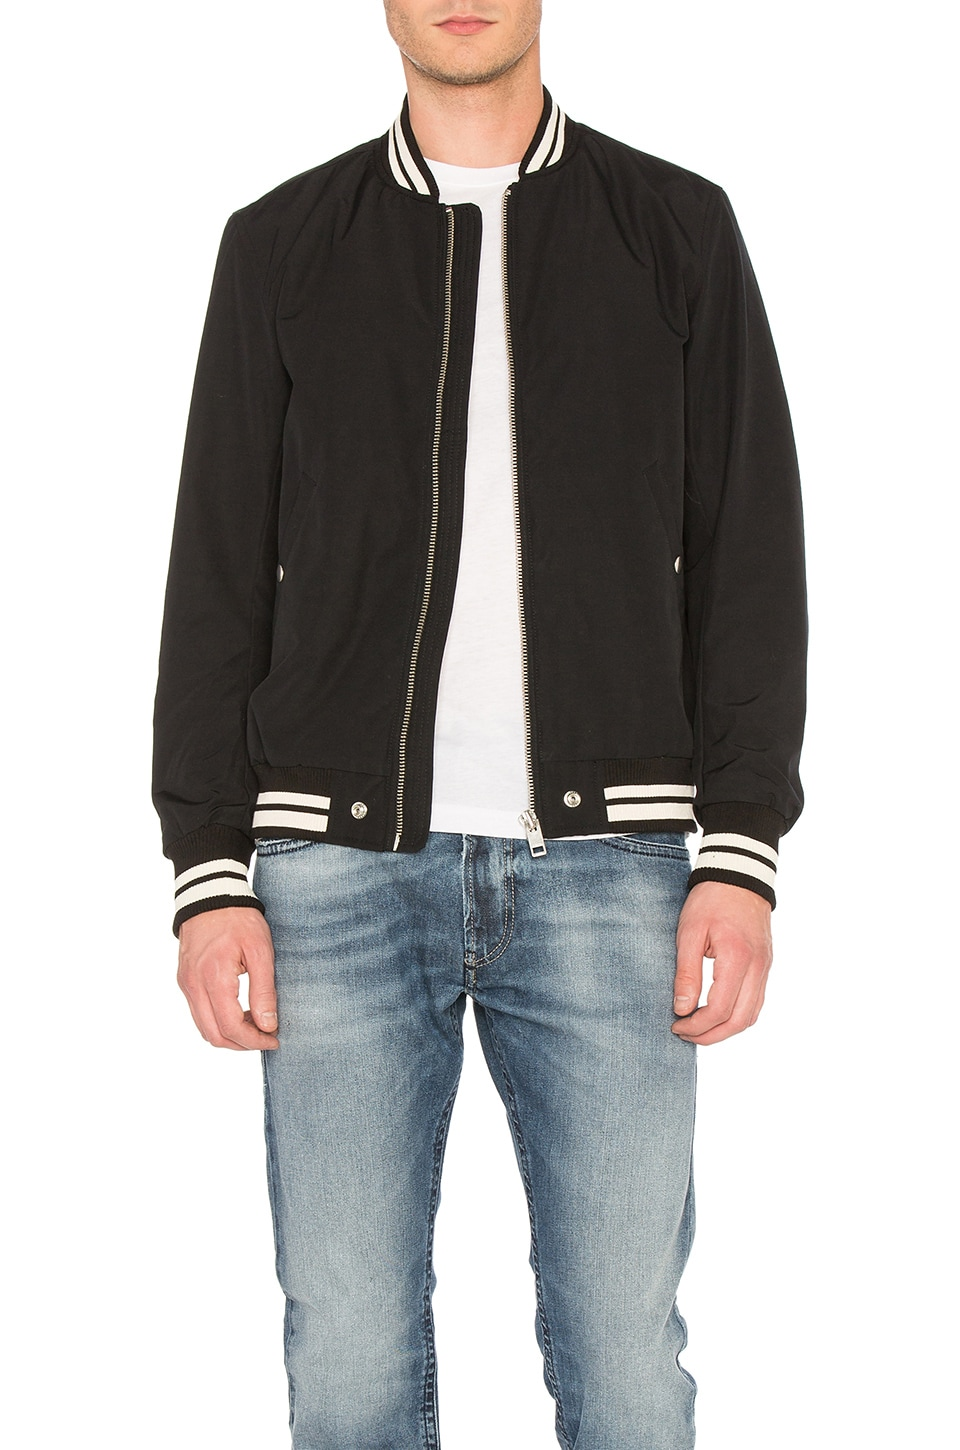 Radical Jacket by Diesel